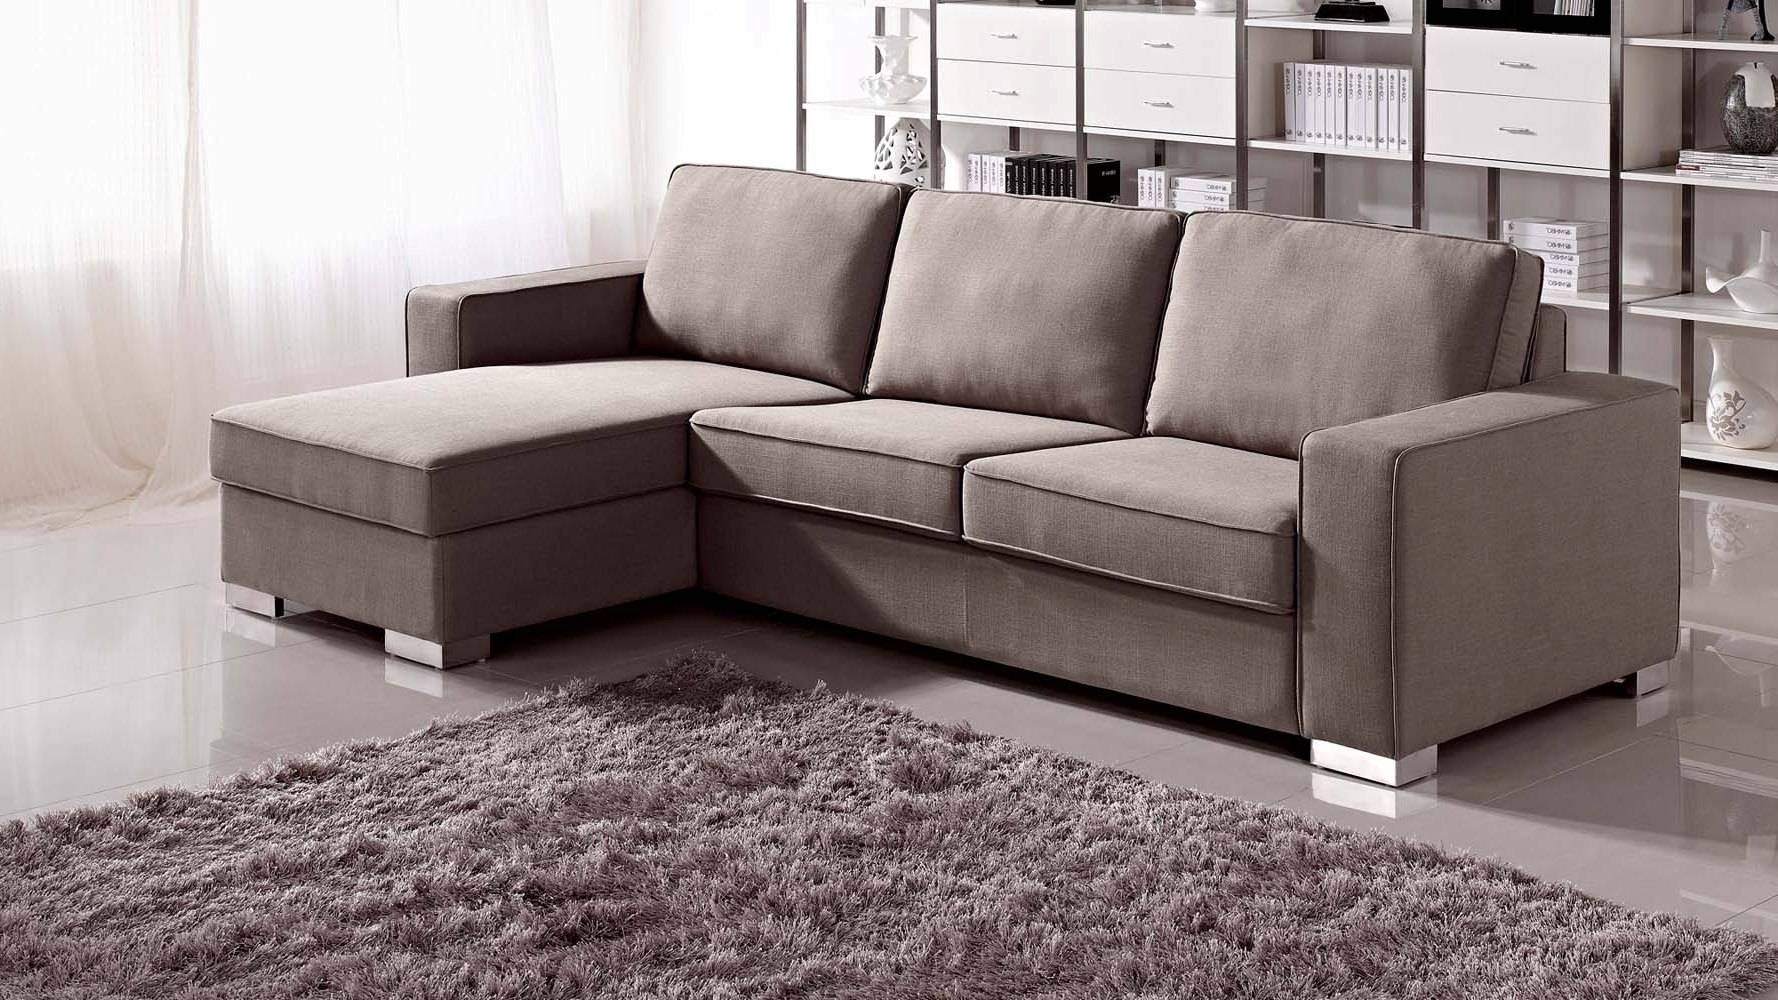 Elegant Discount Sectional Sleeper Sofa 37 For Spencer Leather For Spencer Leather Sectional Sofas (View 8 of 15)